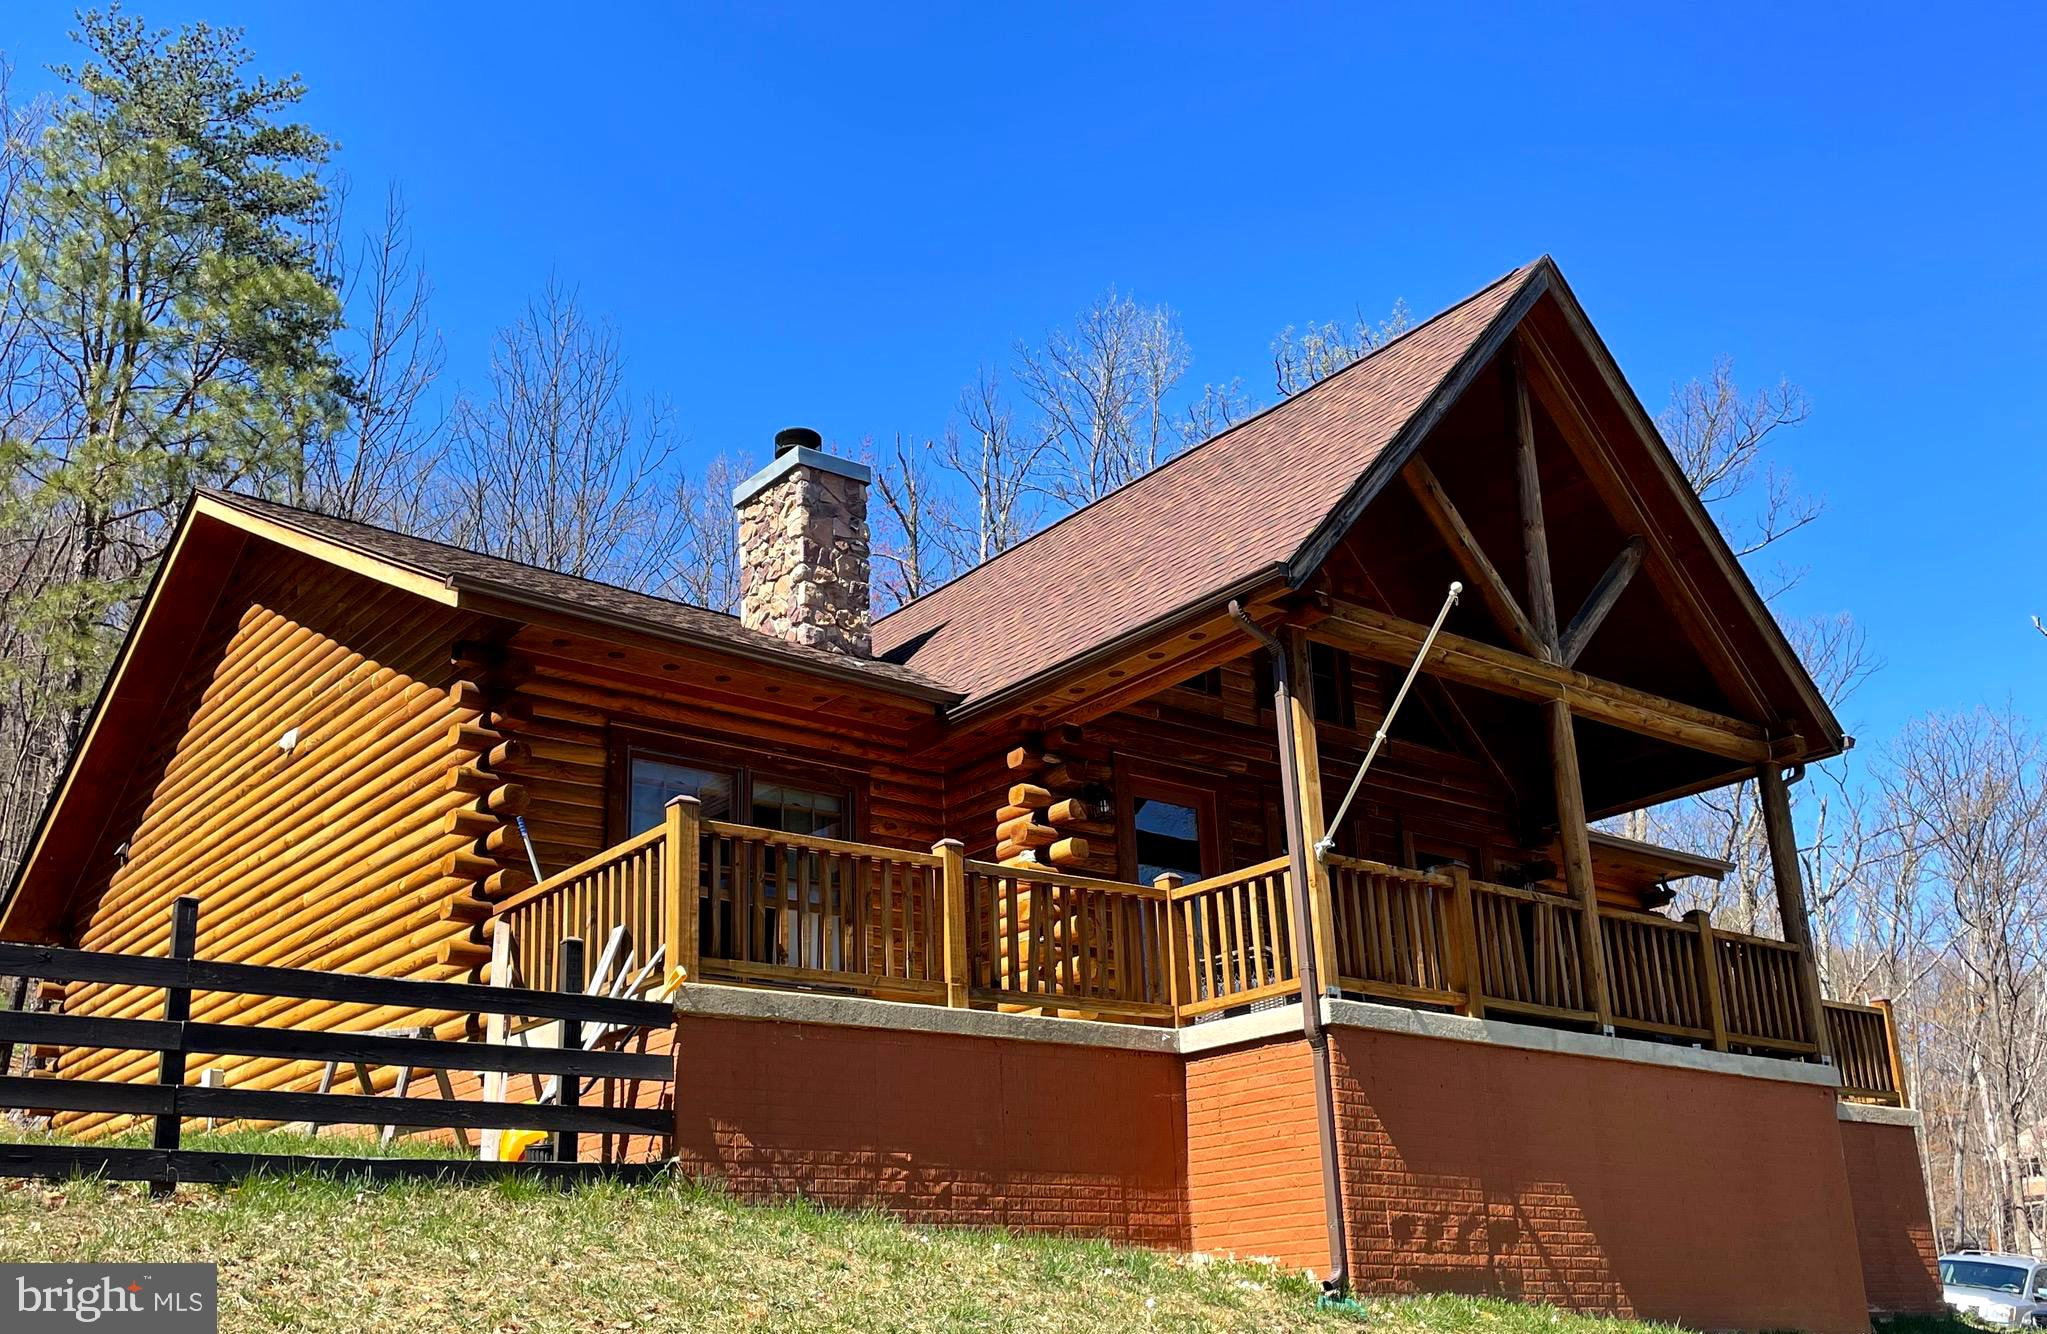 Your dream log cabin on the mountain is move in ready and waiting for you to call her home-sweet-hom